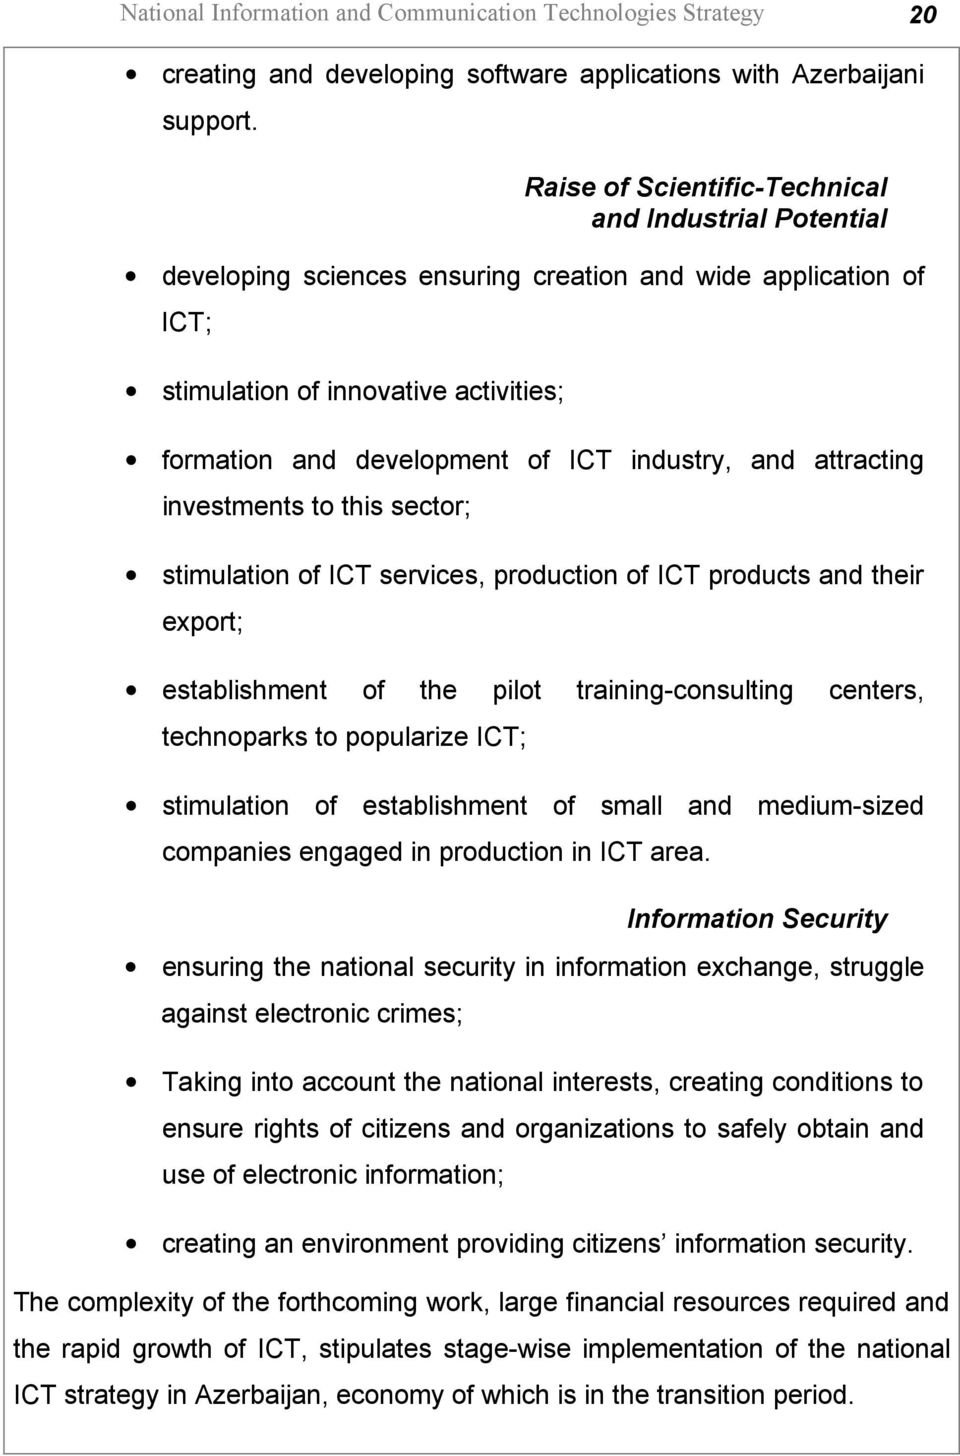 industry, and attracting investments to this sector; stimulation of ICT services, production of ICT products and their export; establishment of the pilot training-consulting centers, technoparks to